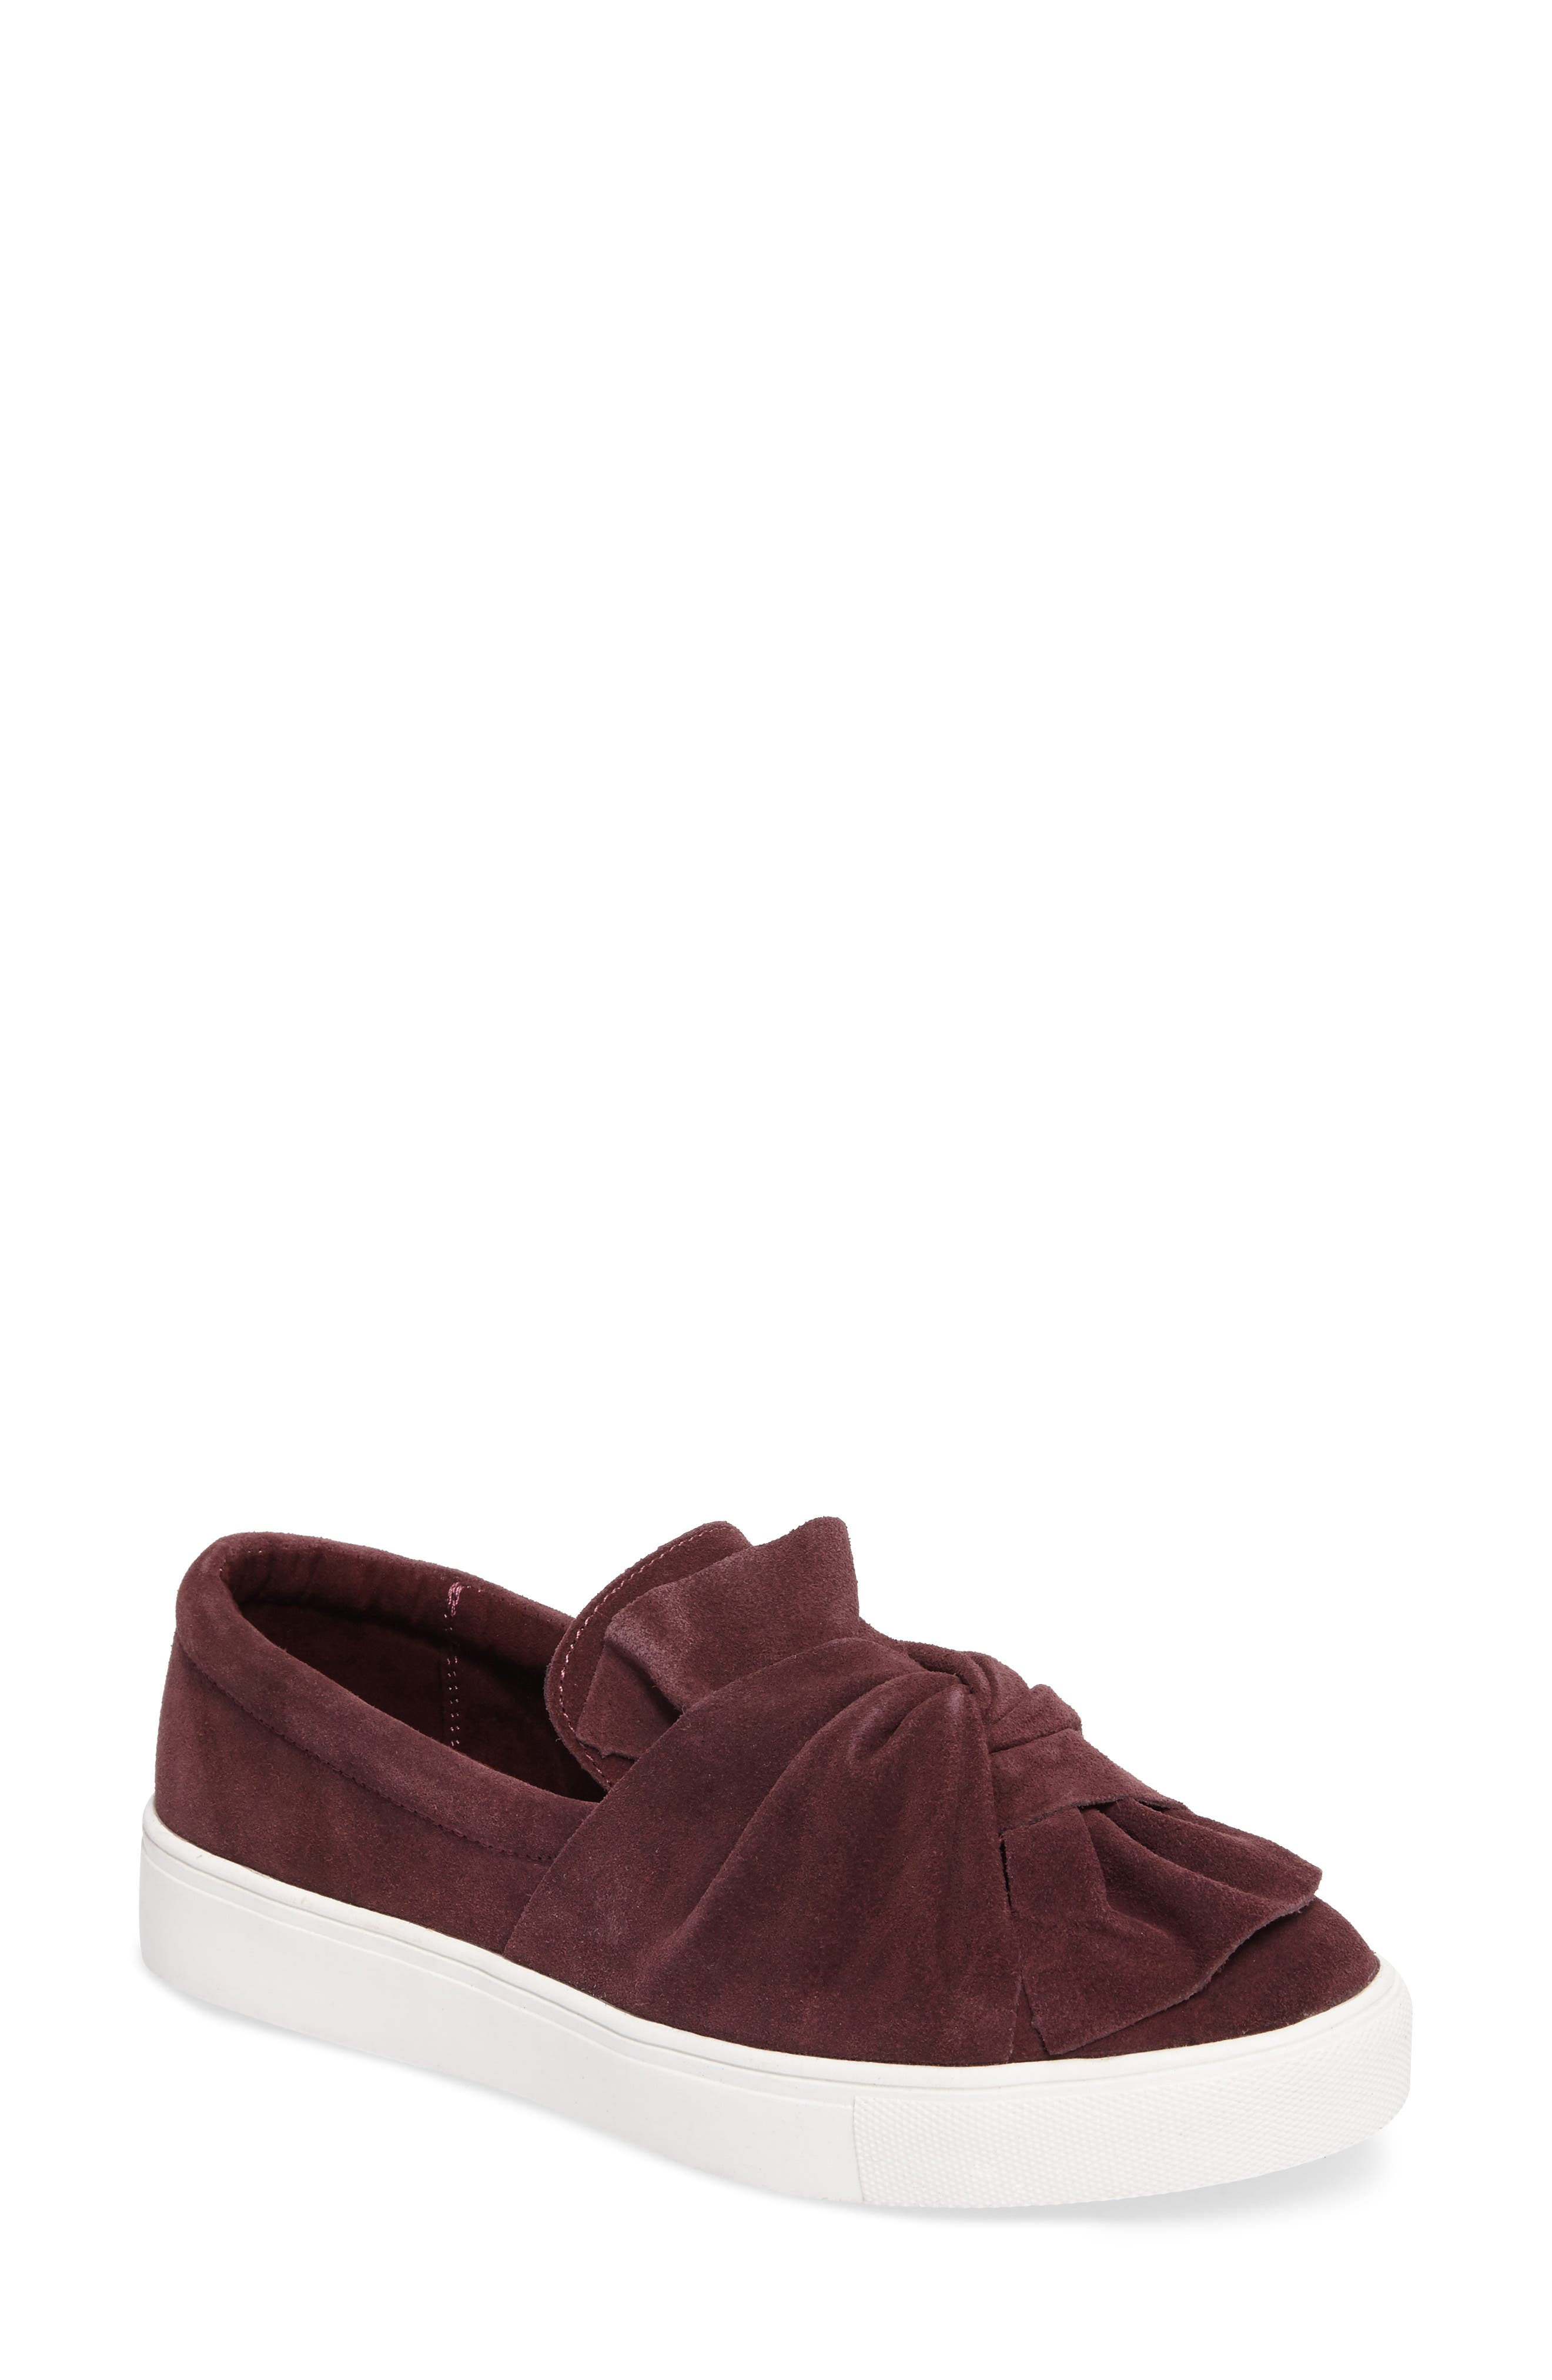 Alternate Image 1 Selected - MIA Zahara Slip-On Sneaker (Women)